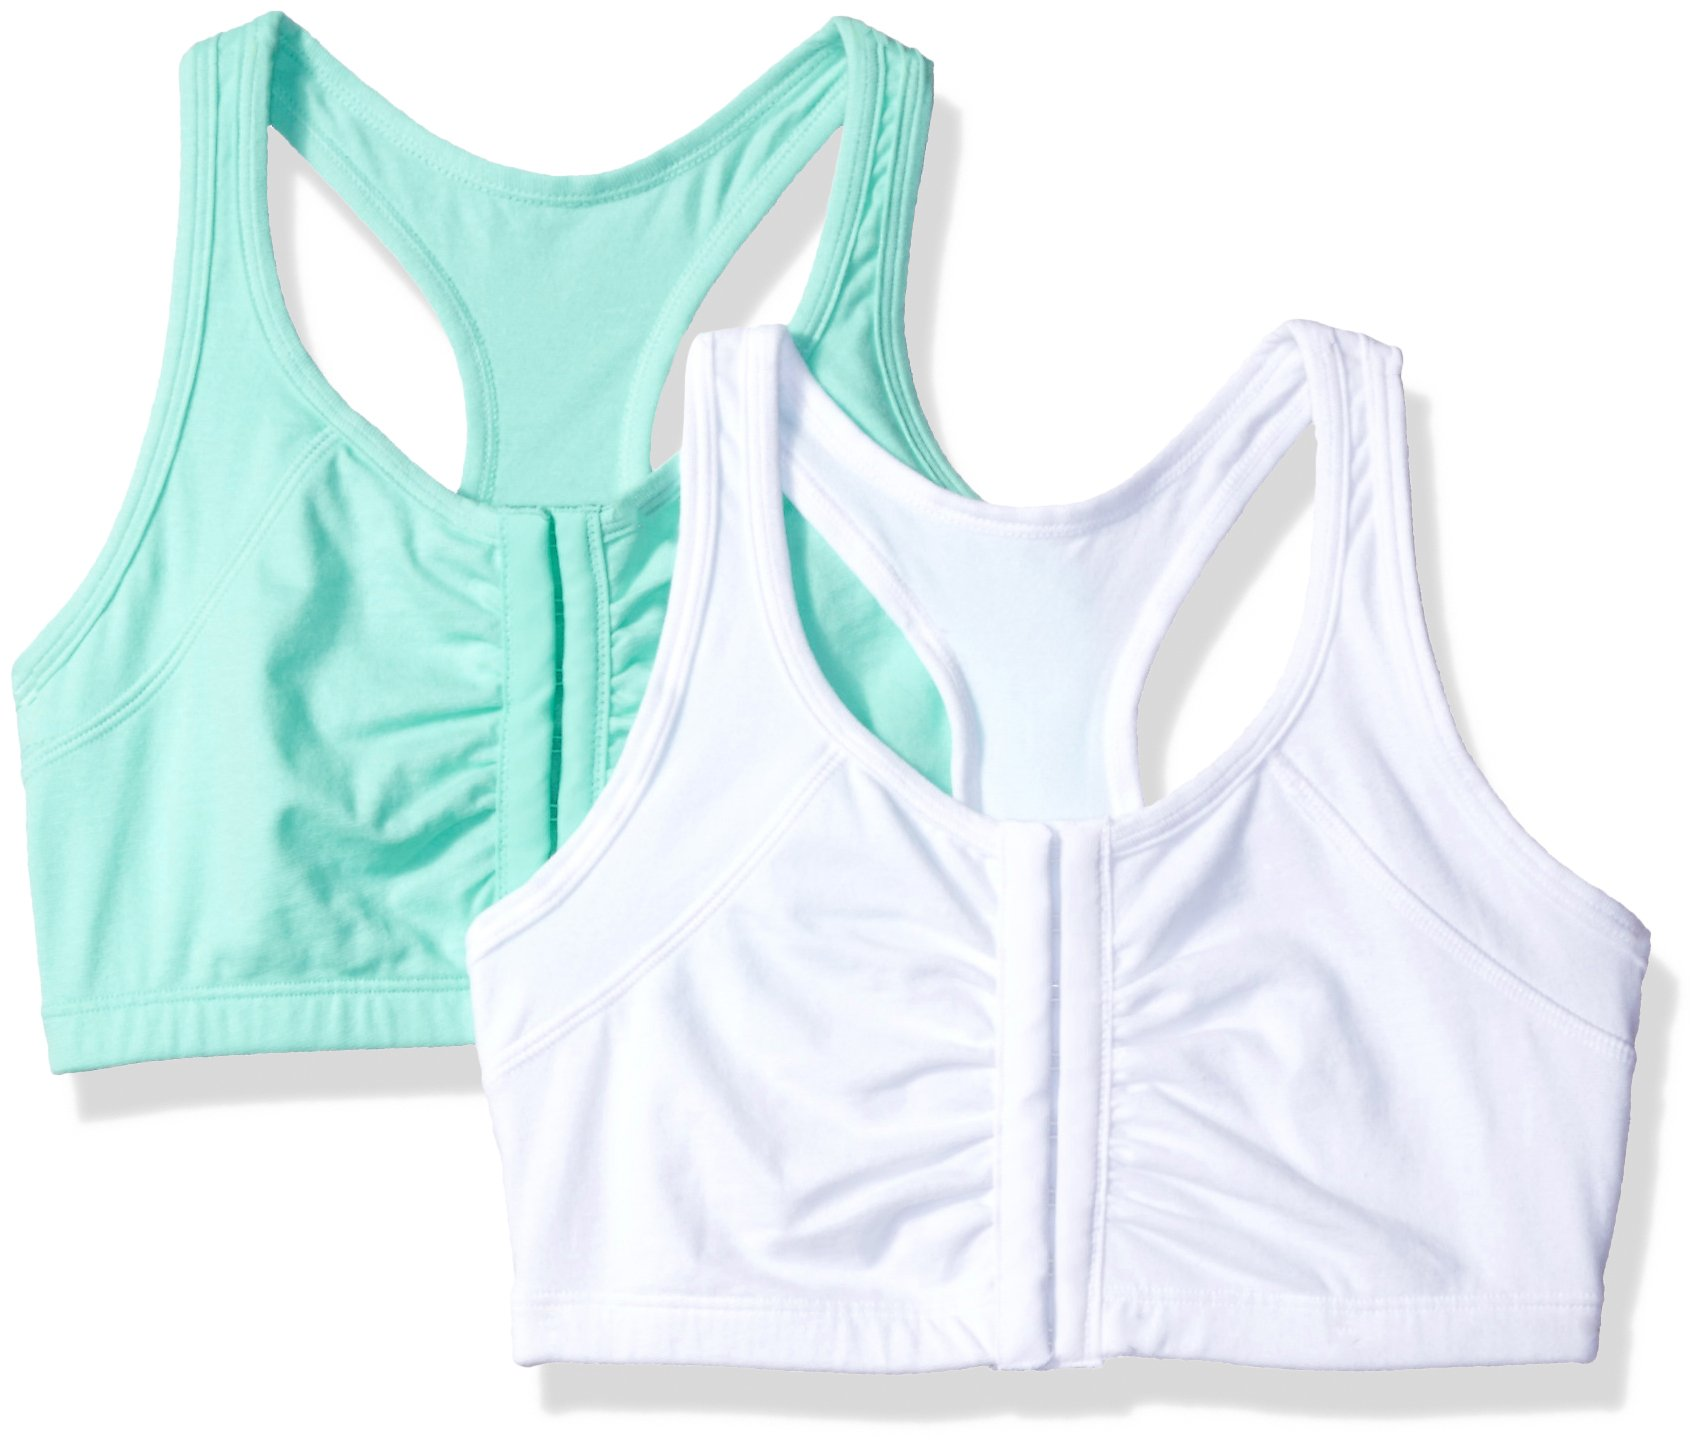 Fruit of the Loom Women's 2 Pk Front Close Racerback, Mint Chip/White Ck, 38 by Fruit of the Loom